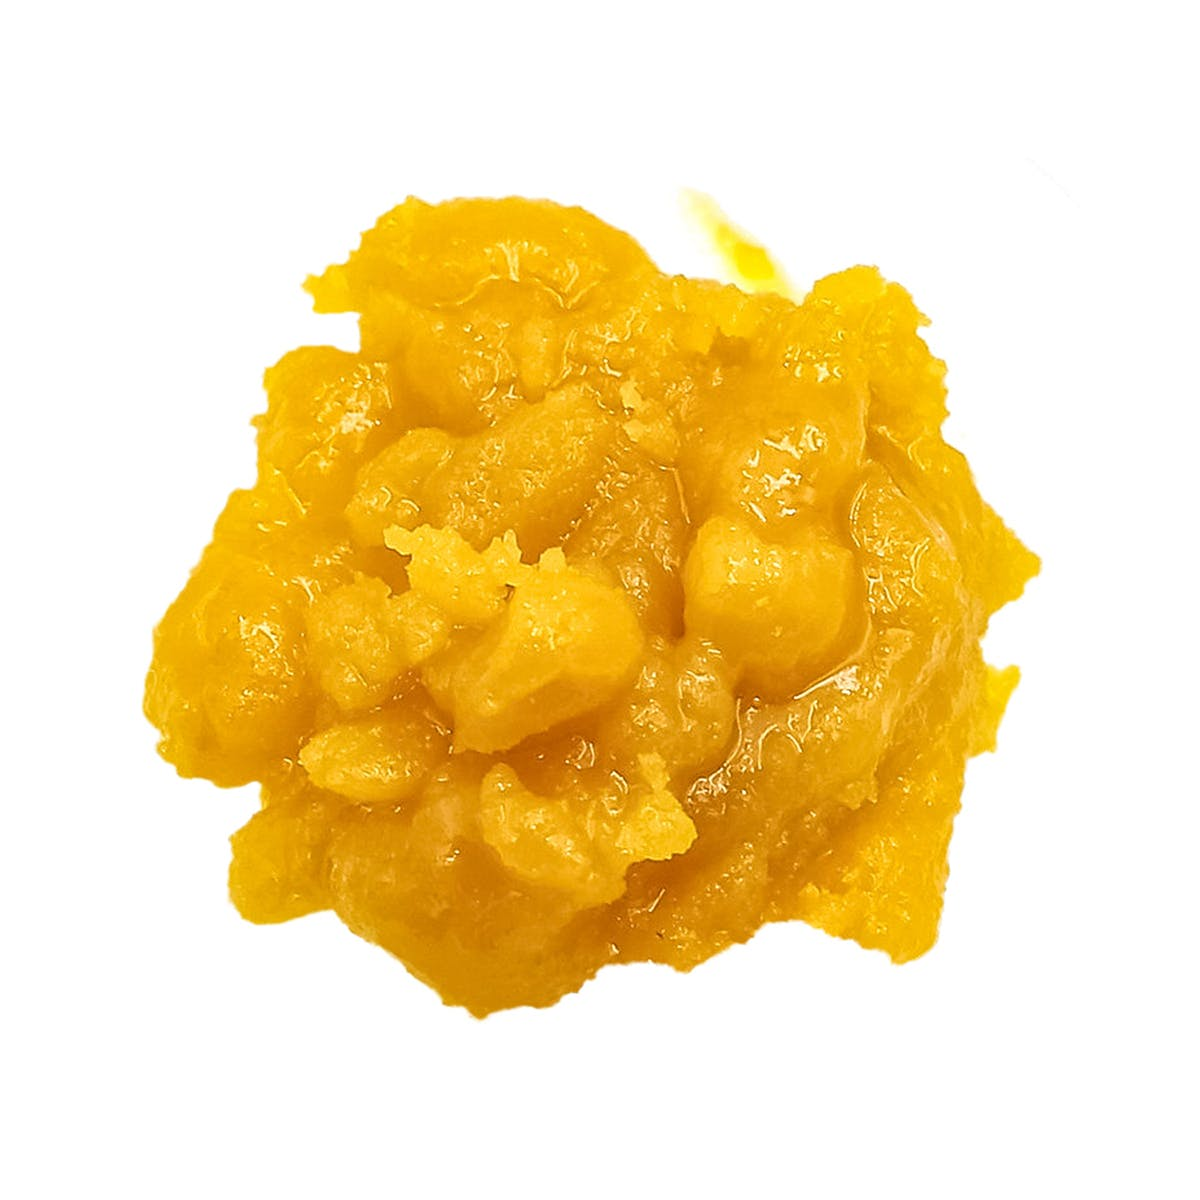 concentrate-303-kush-live-wax